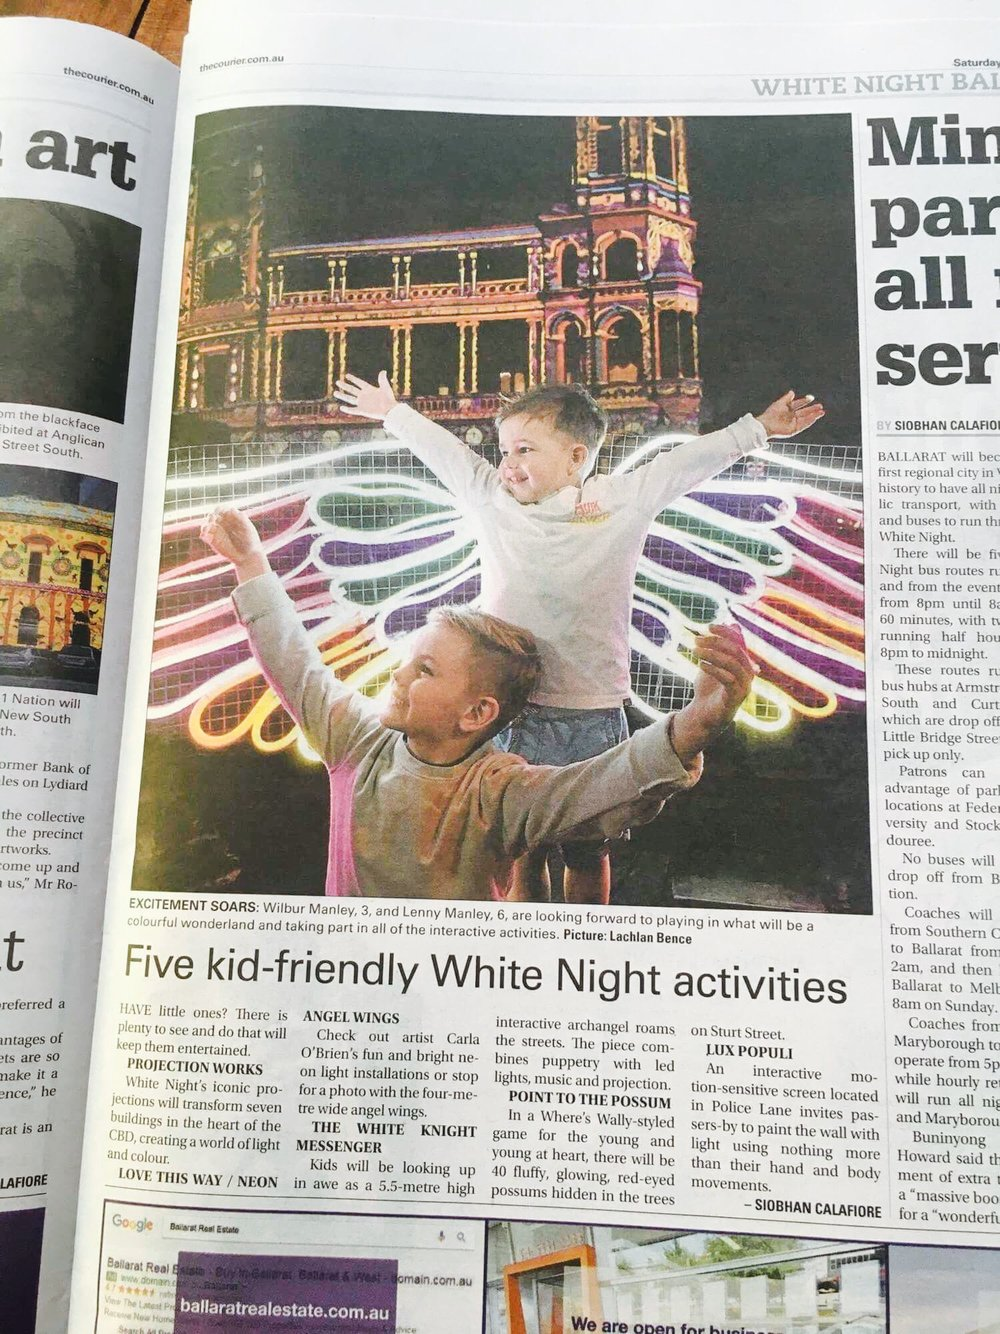 Ballarat The Courier cover story Mar 4.jpeg